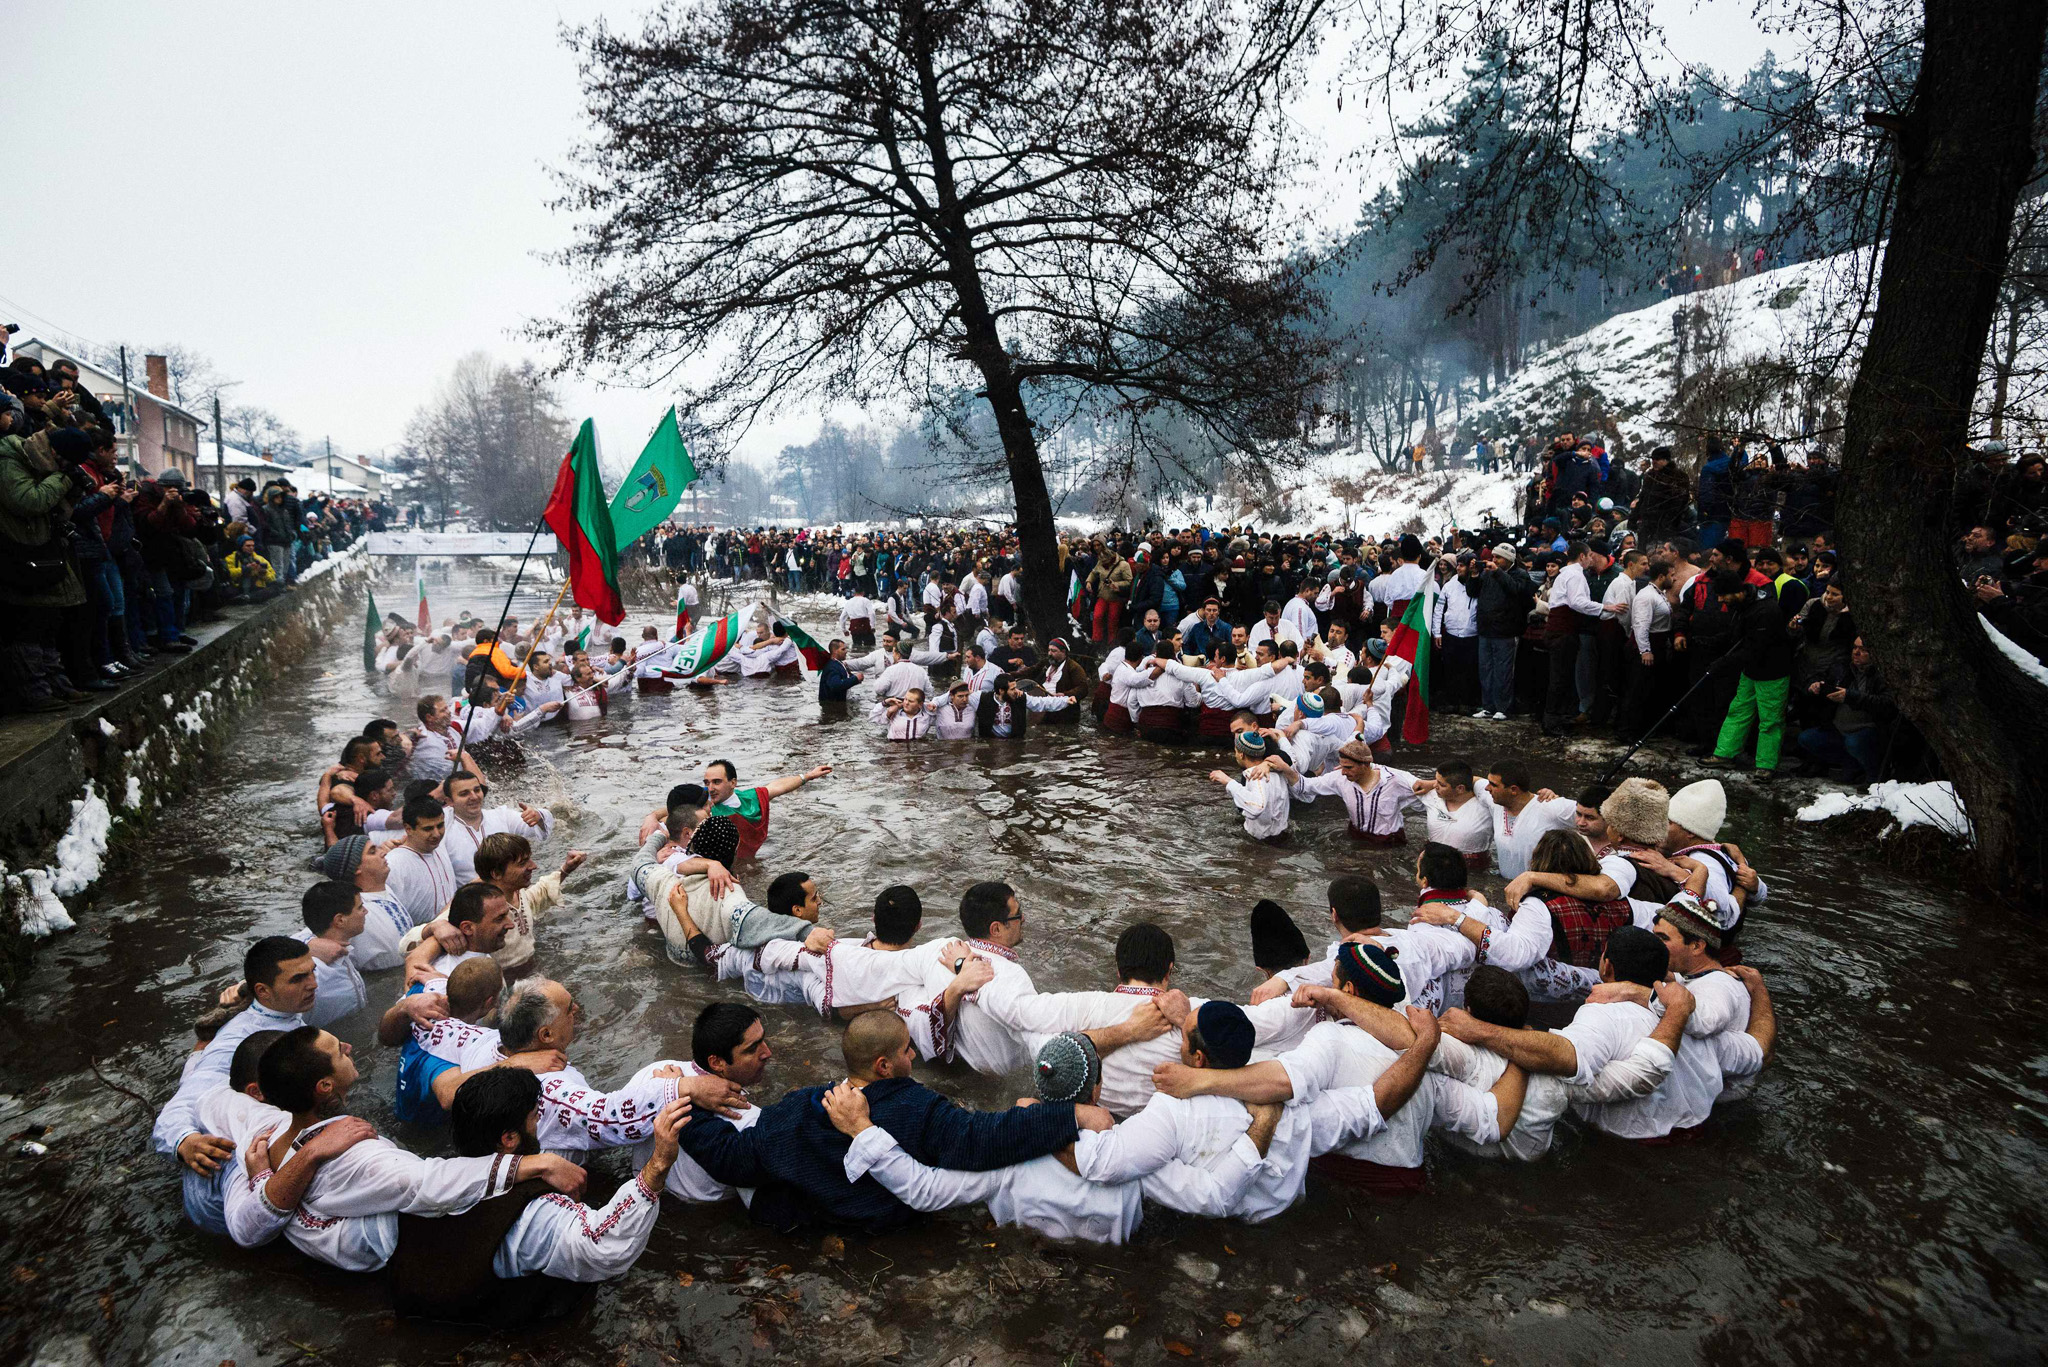 Men dance in the icy winter waters of th...Men dance in the icy winter waters of the Tundzha river in the town of Kalofer as part of the Epiphany Day celebrations on January 6, 2016.  As a tradition, an Eastern Orthodox priest throws a cross in the river and it is believed that the one who retrieves it will be healthy through the year as well as all those who dance in the icy waters.